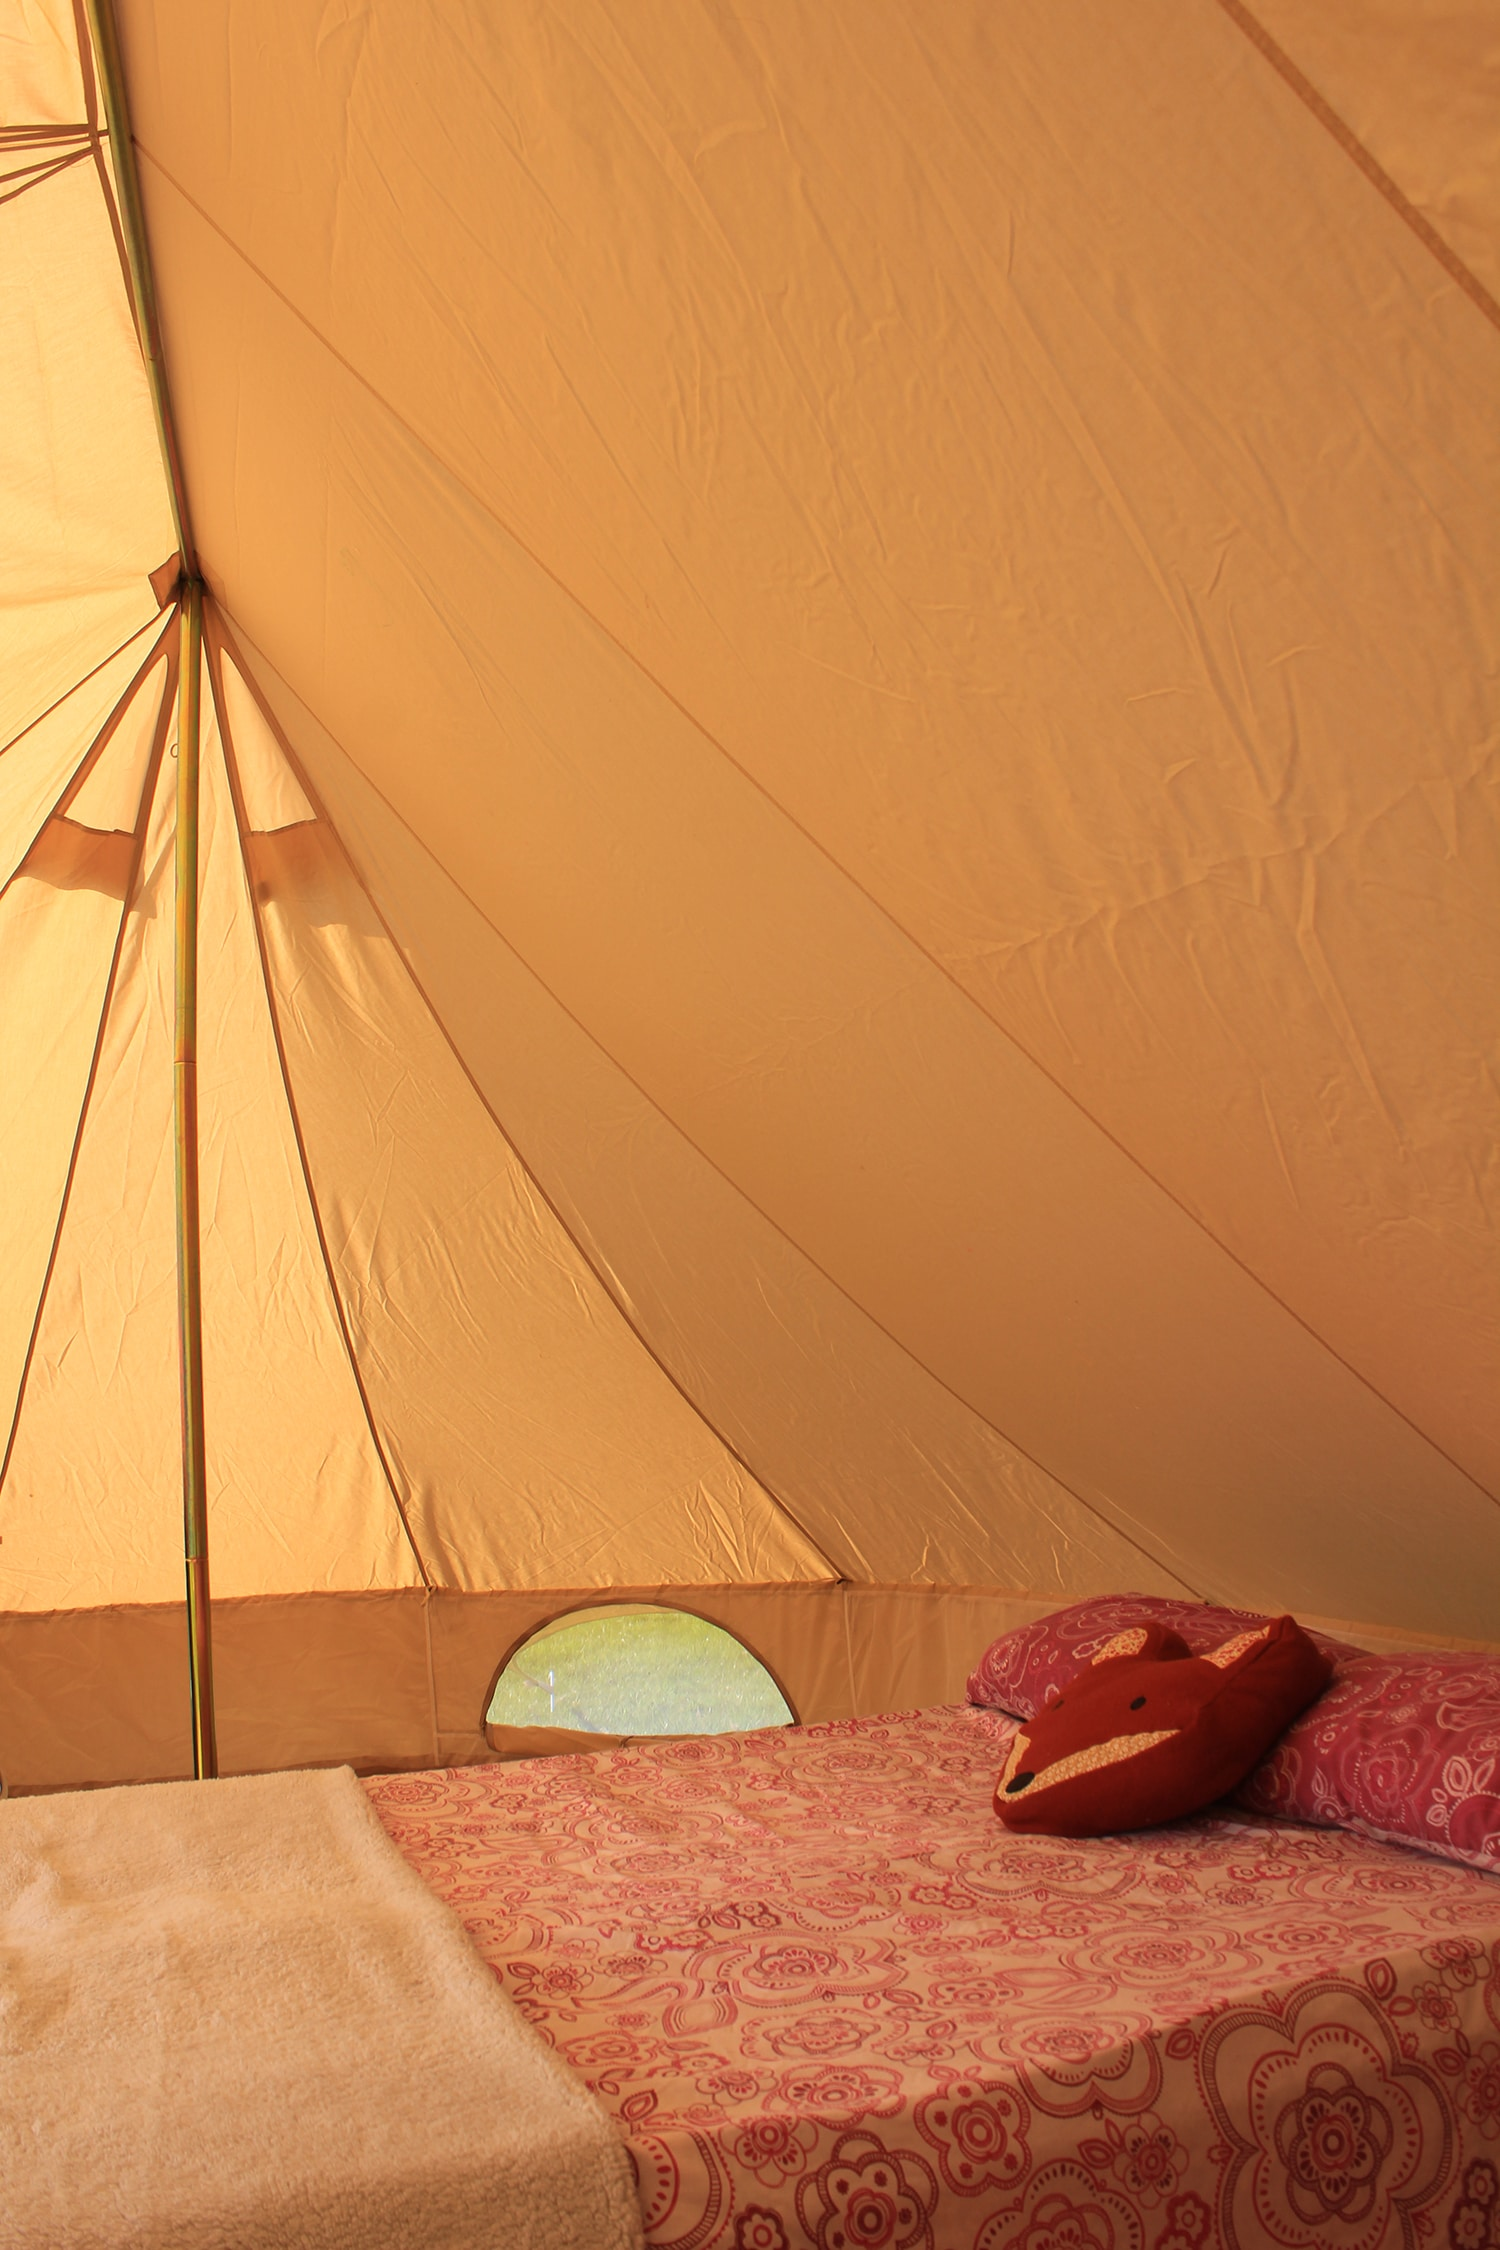 Emperor star bell tent from Boutique Camping review